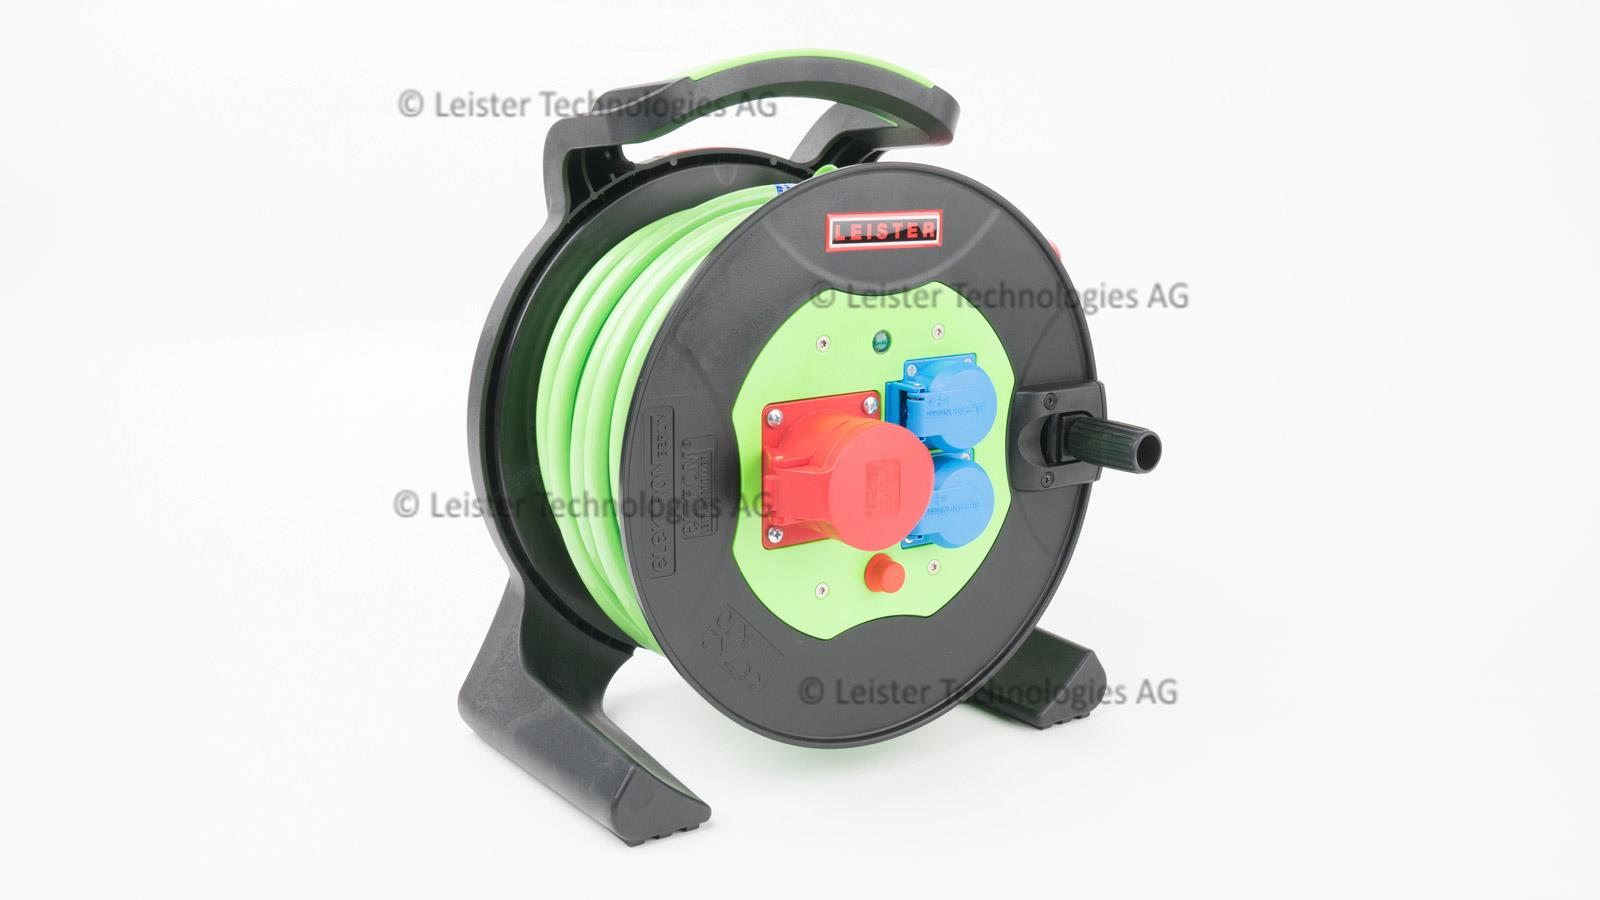 https://leister.azureedge.net/-/media/images/leister_internet/335-ltag-pw-ph-accessories/leister-accessories/allgemeines-zubehoer/160_353_cable_reel_25_1-cee_2-eu.jpg?revision=89bcdd43-0314-491a-a4d9-5d2445d7dcb0